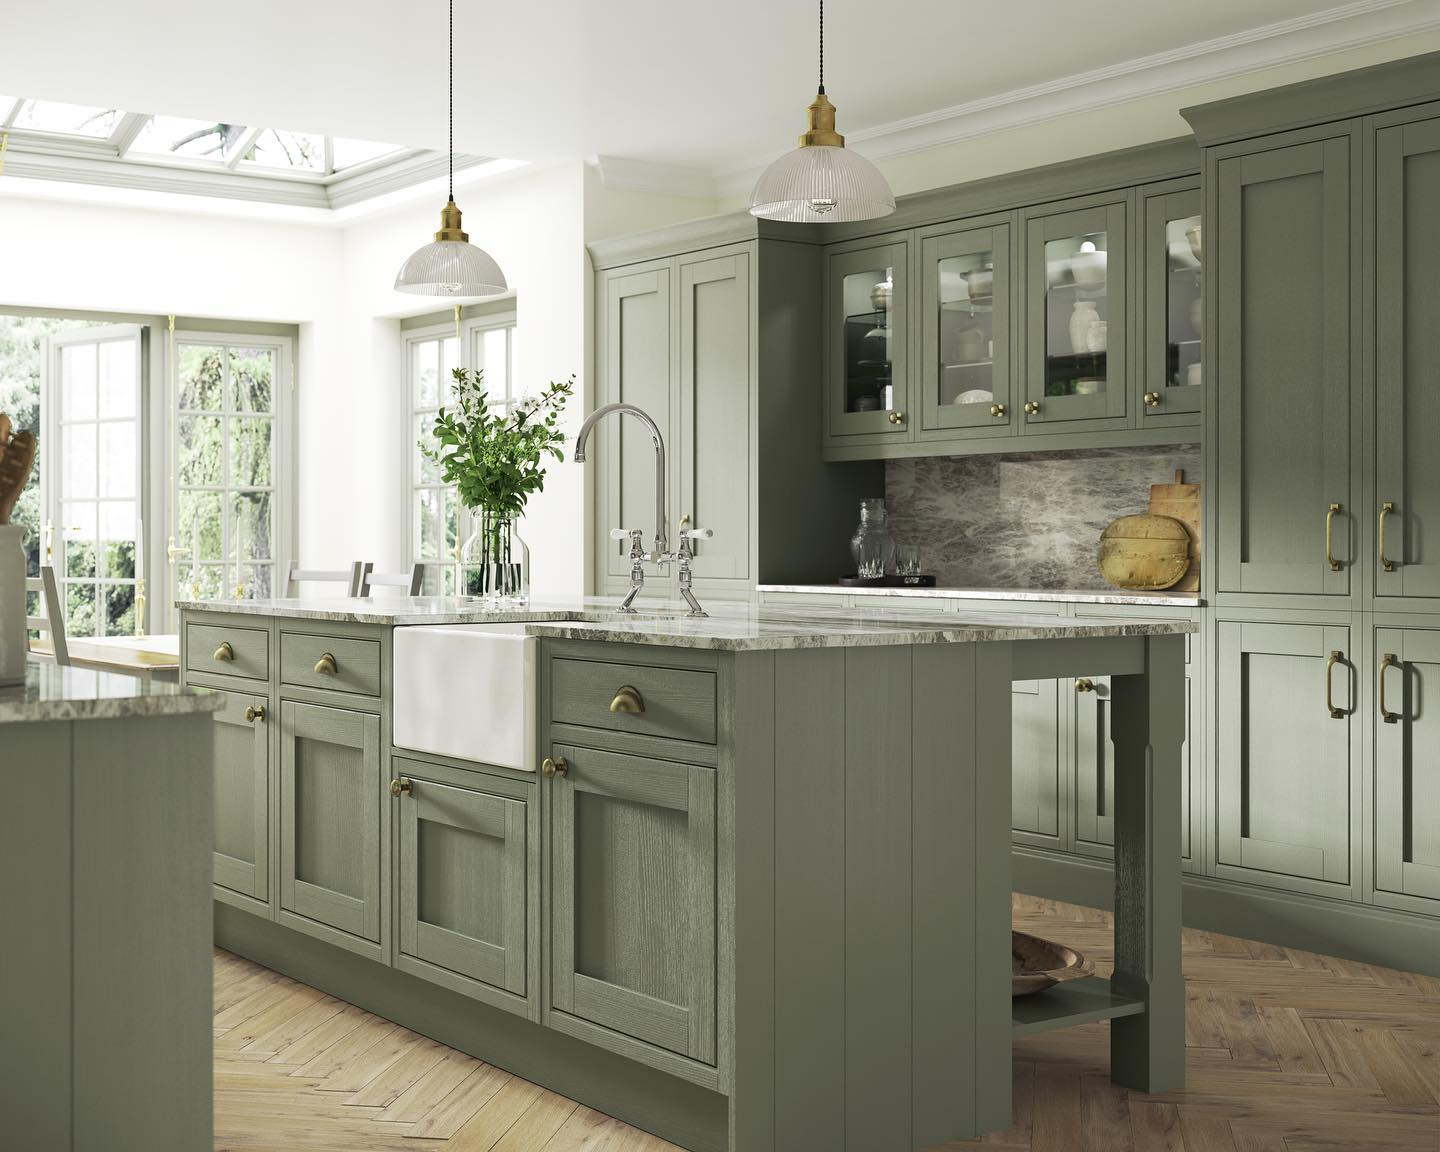 The New England kitchen, a more traditional style on offer at Birkdale Kitchen Co. in Birkdale Village in Southport